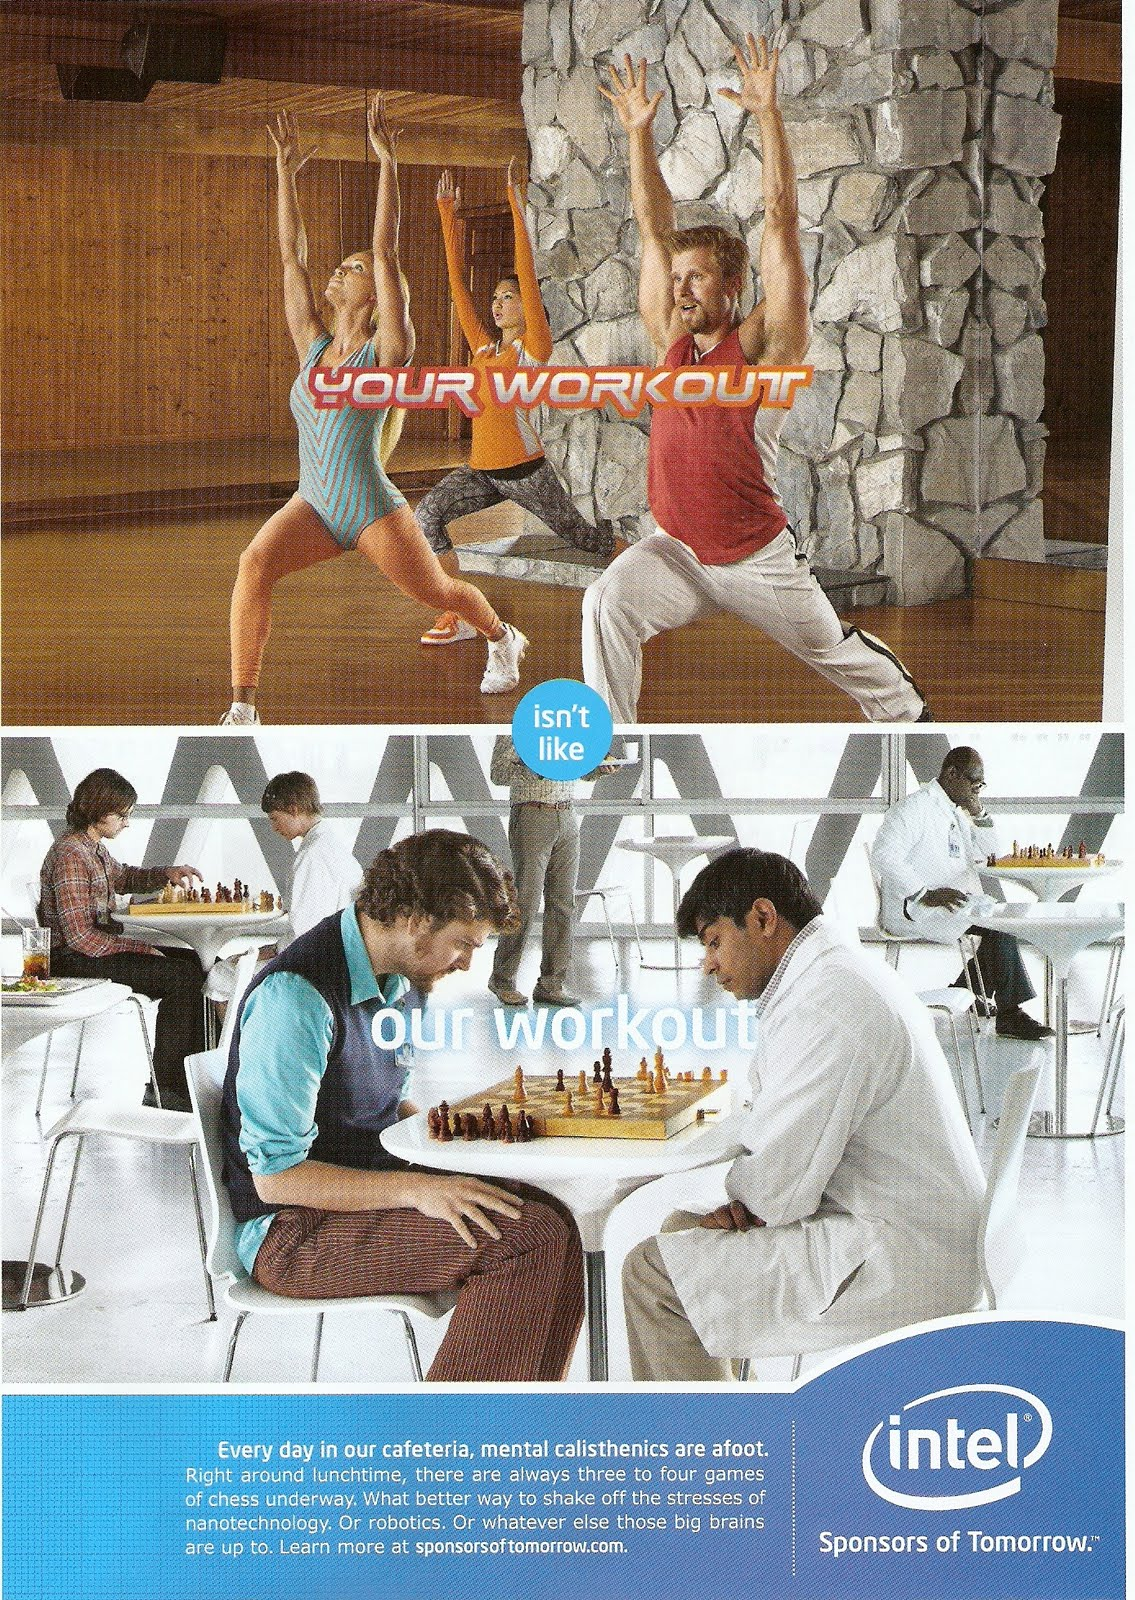 intel_workout_ad0001